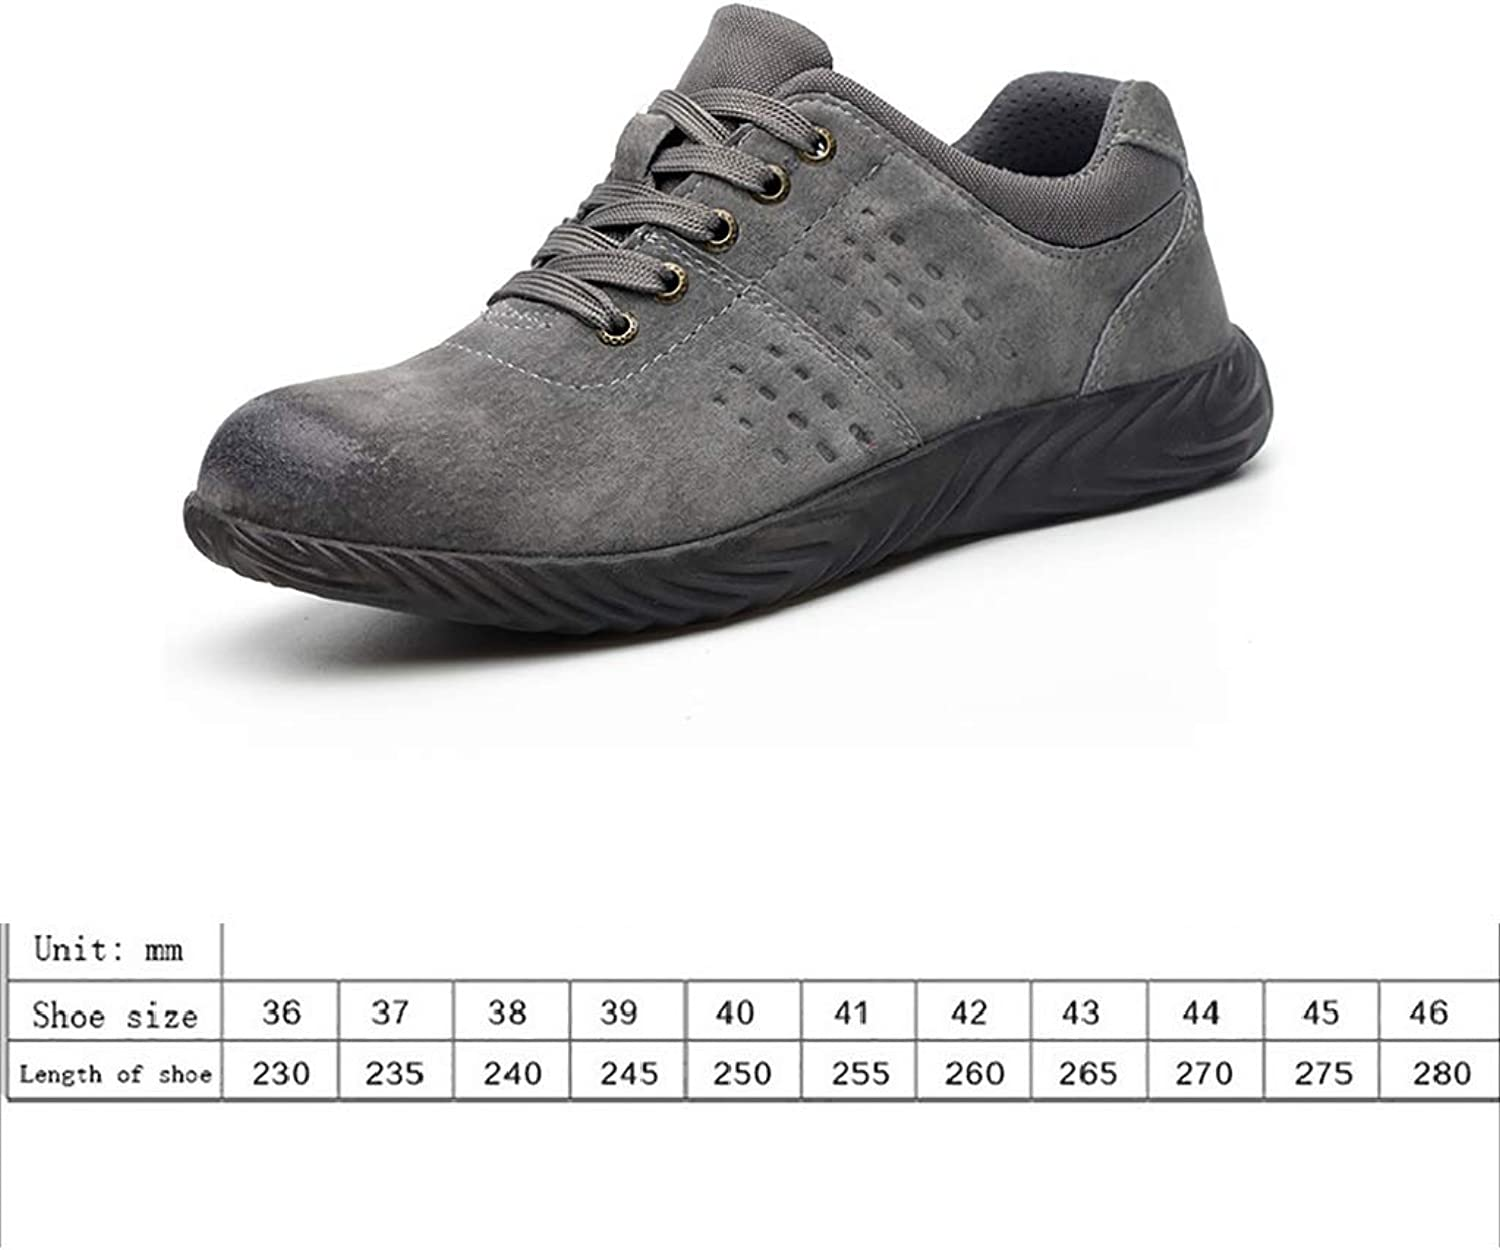 Work shoes Work shoes work shoes light and comfortable men's casual shoes outdoor non-slip shoes anti-mite   puncture   tendon jelly soles predective shoes pigskin shoes waterproof breathable low to h